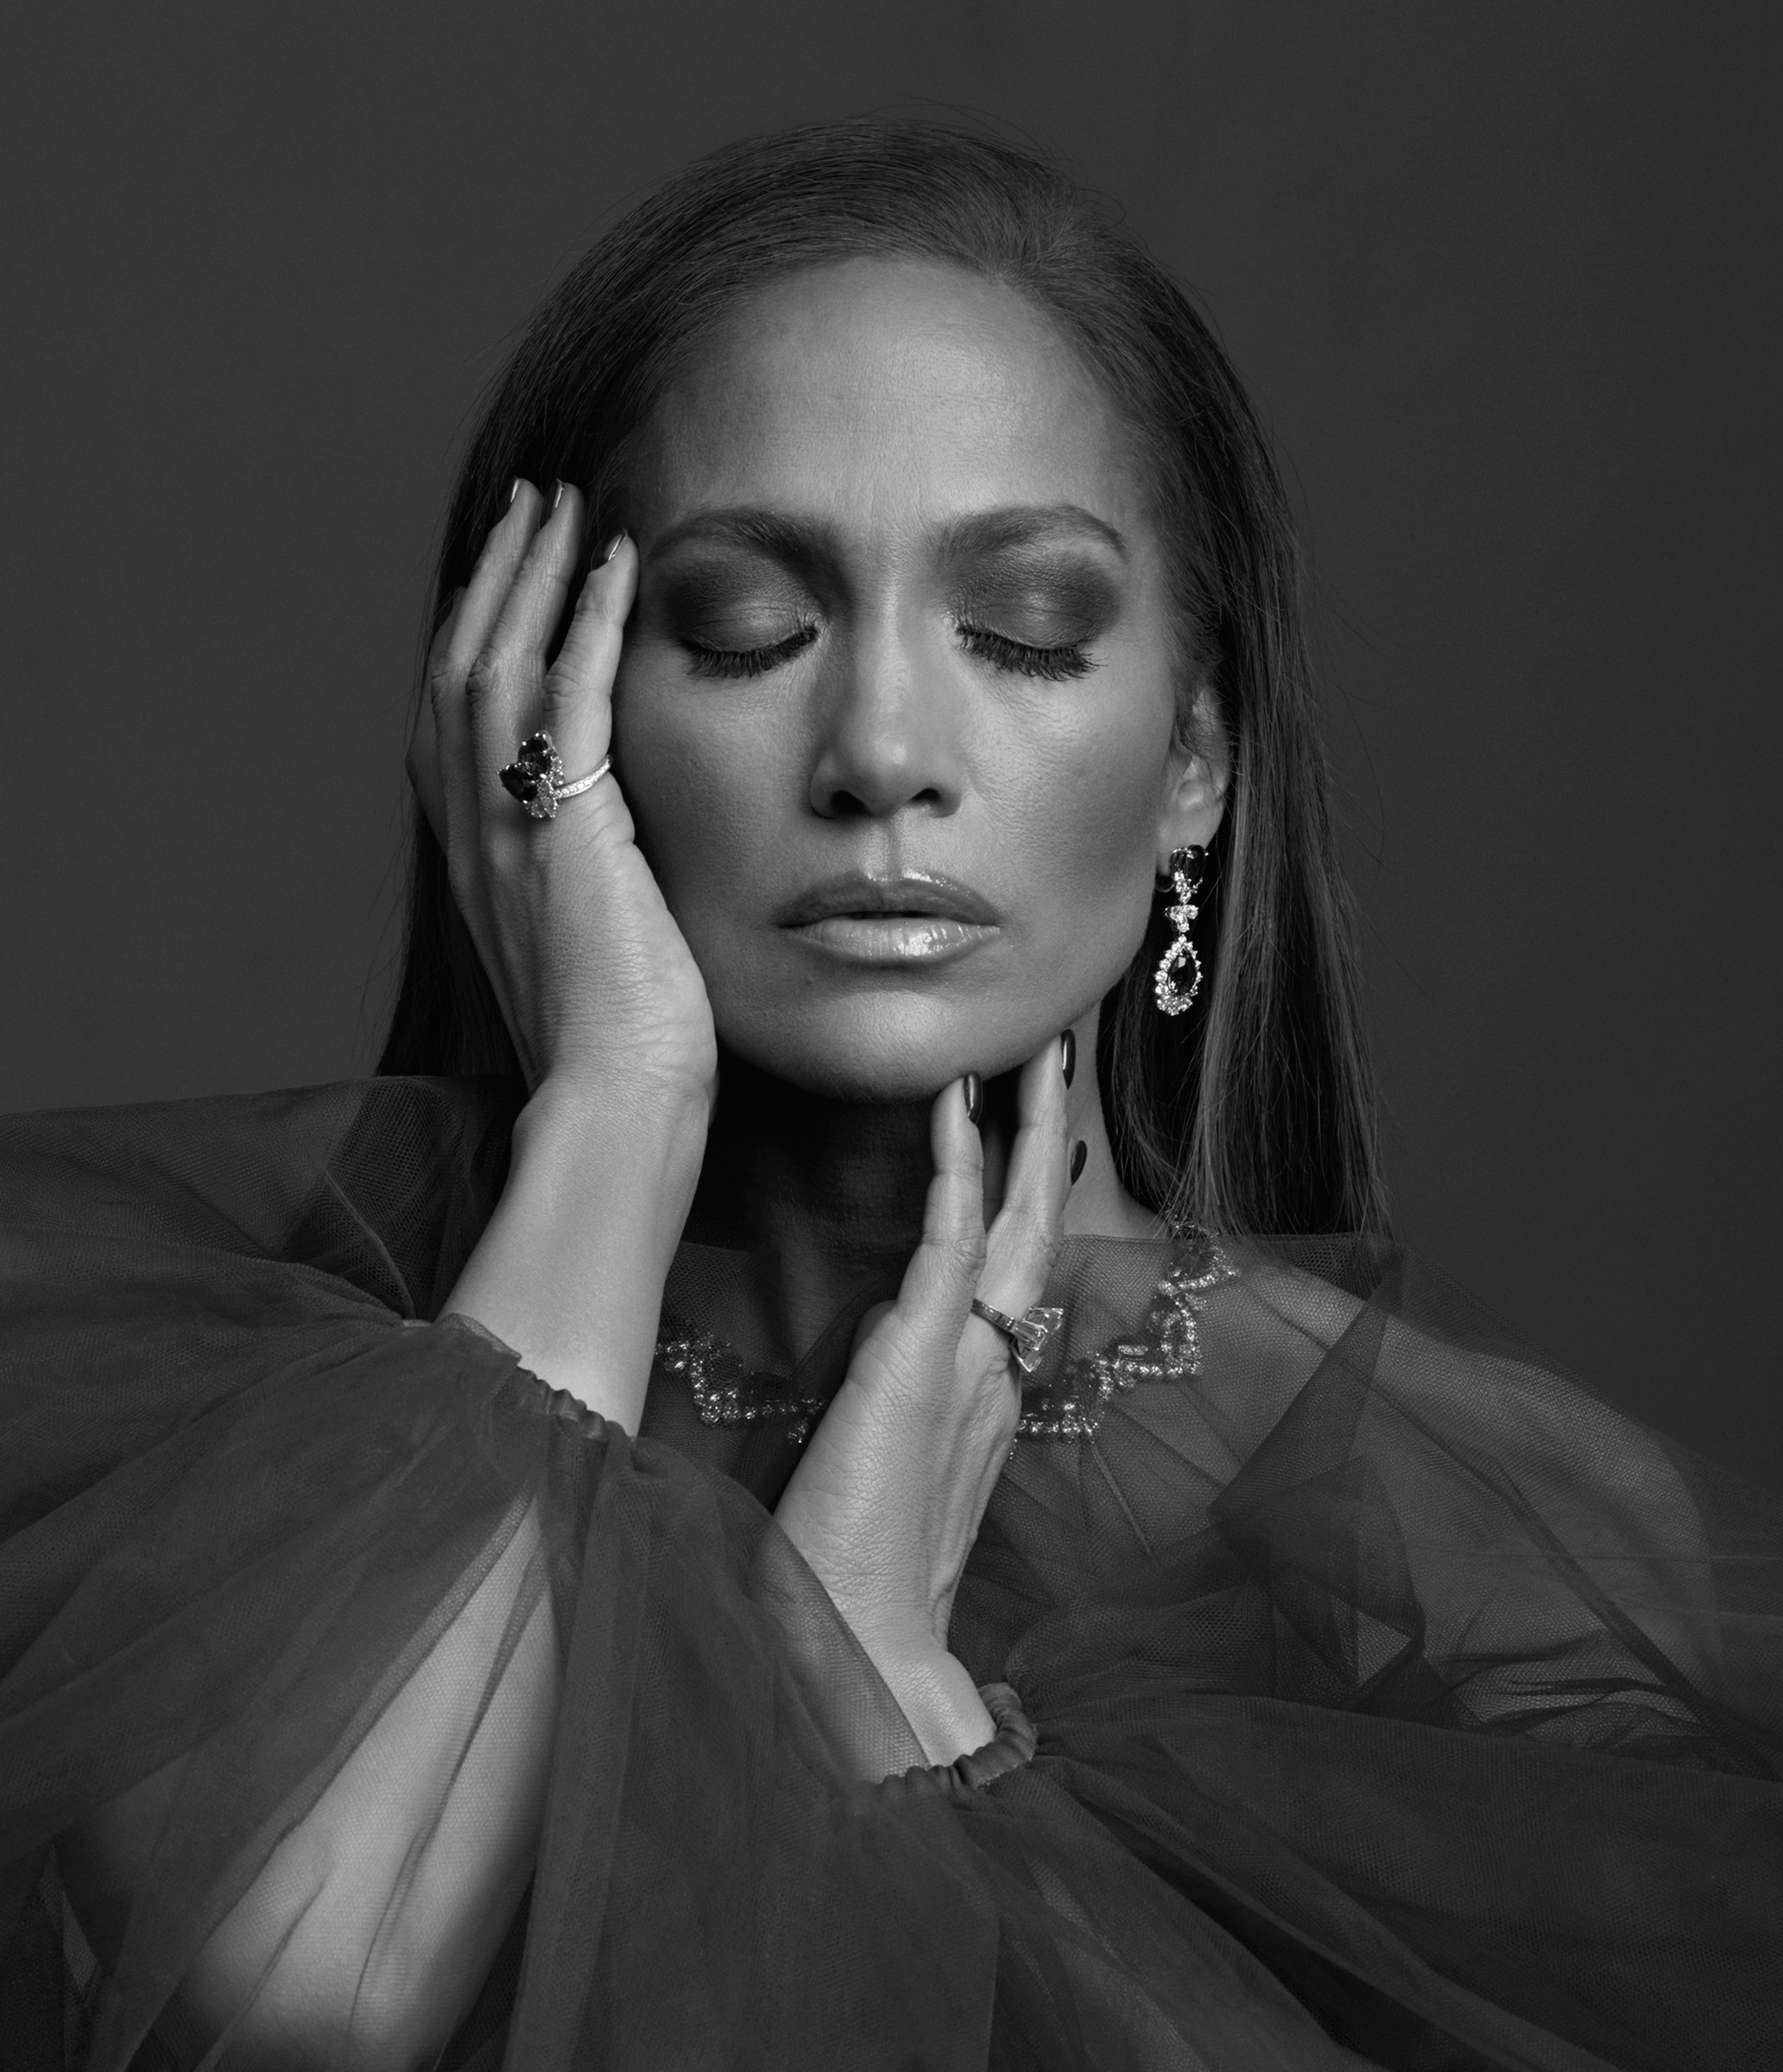 Jennifer Lopez, Vanity Fair Feb. 2020 PHOTOGRAPH BY ETHAN JAMES GREEN